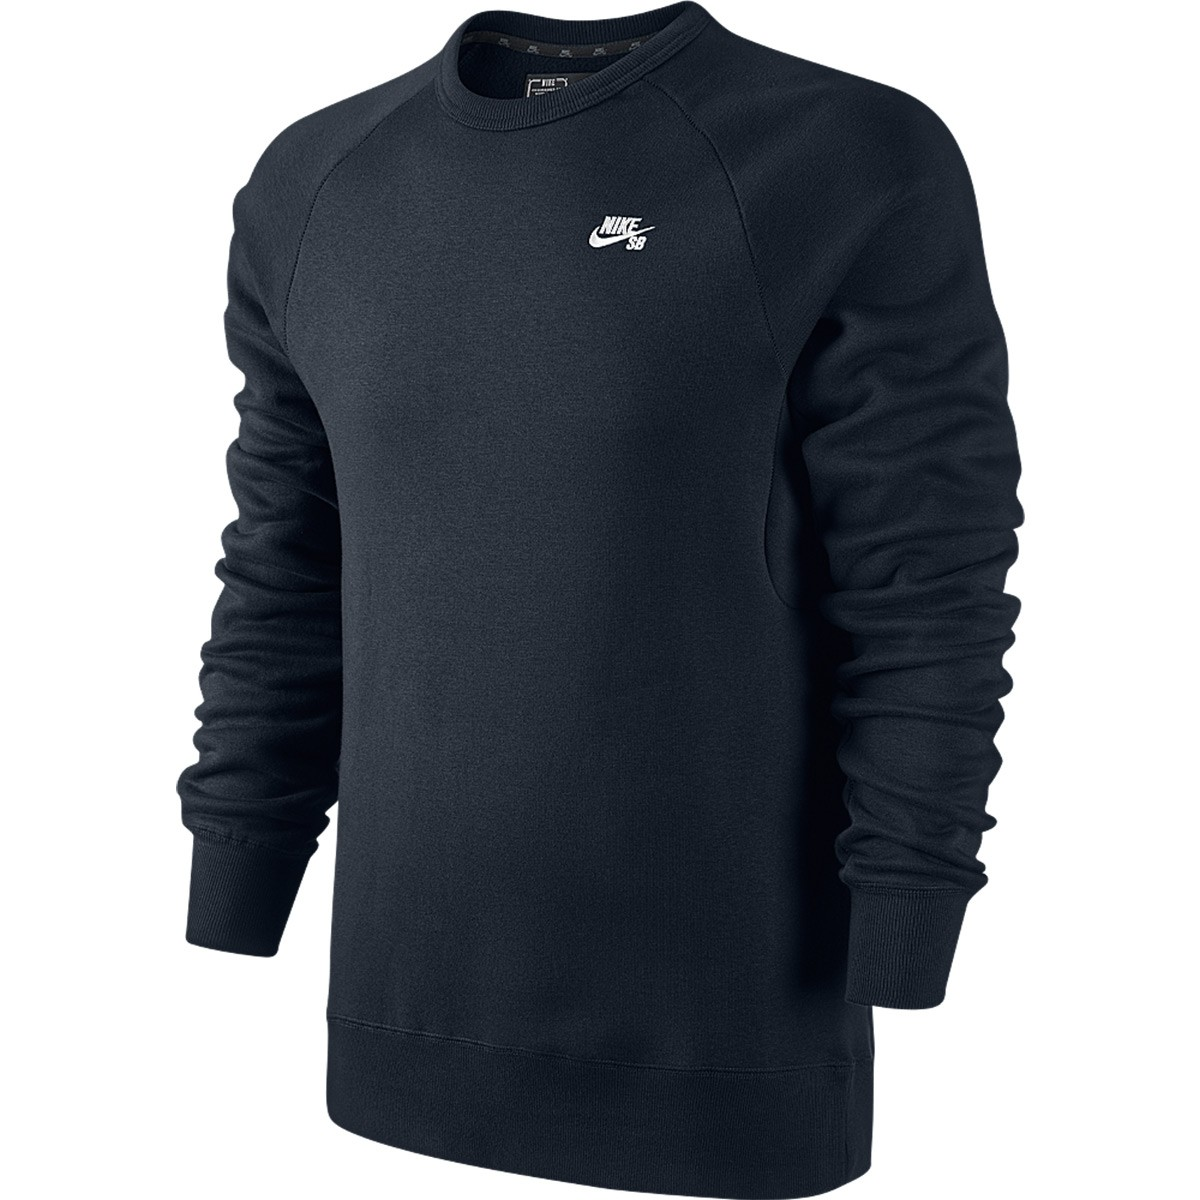 Nike Sb Icon Crew Sweatshirt Dark Obsidian White